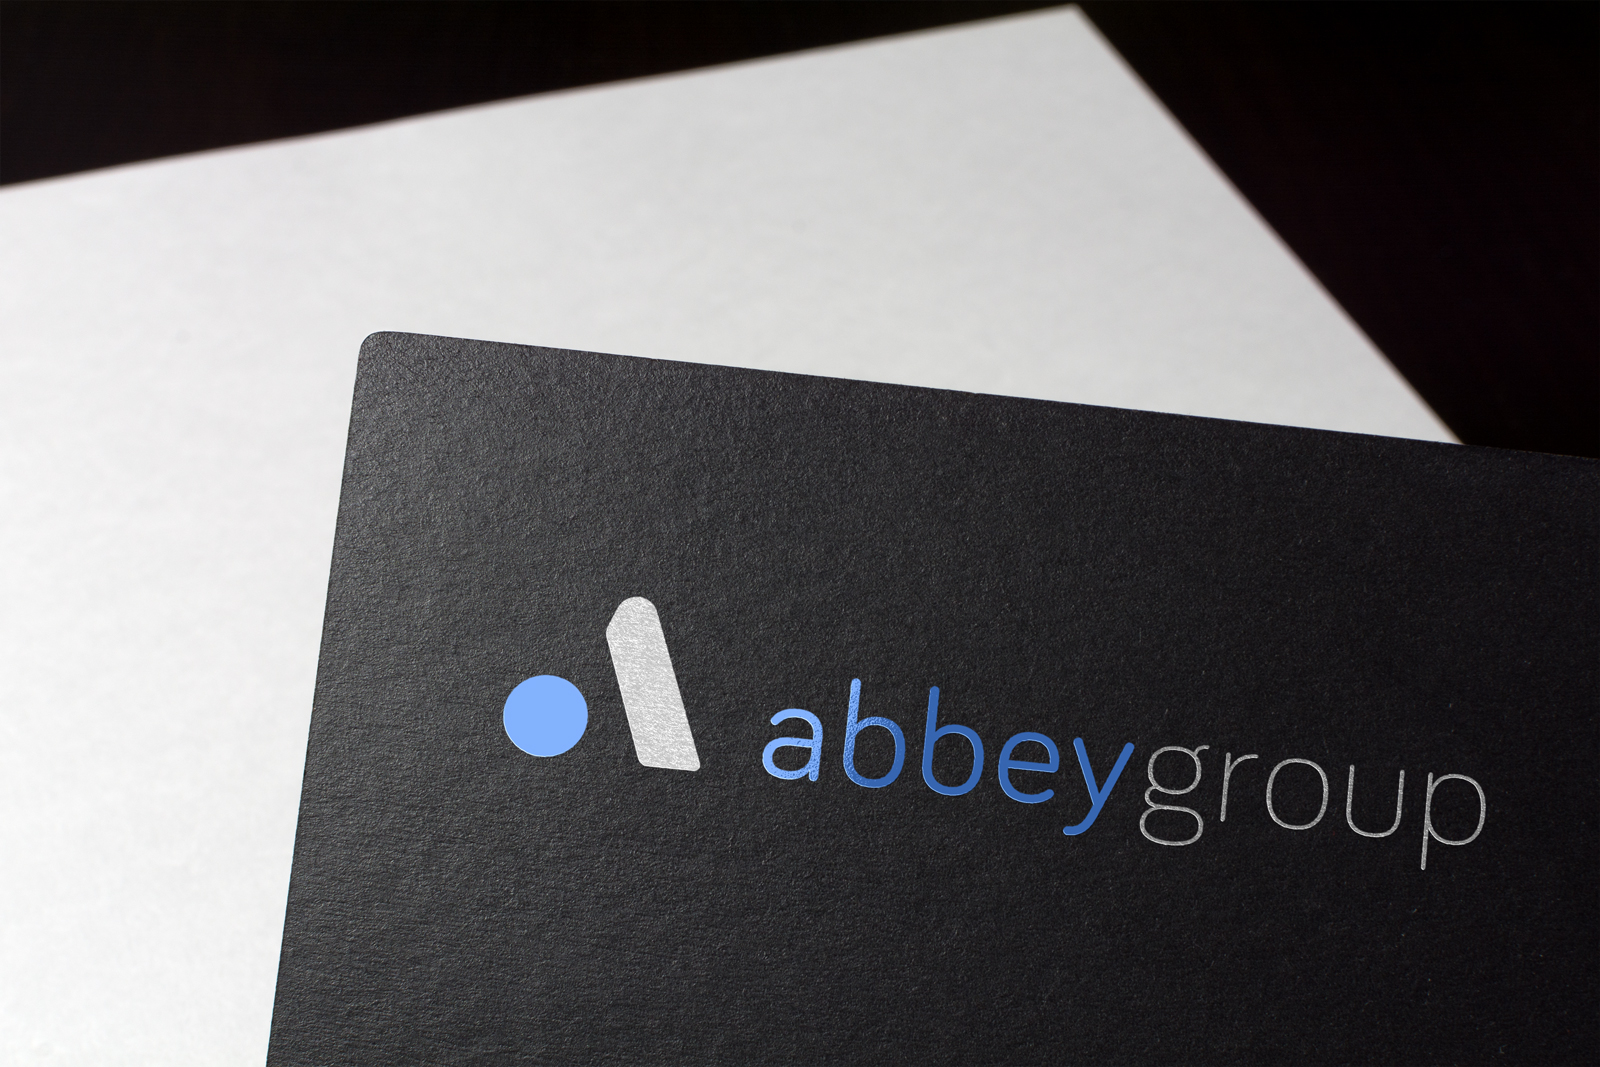 abbey group logo on black card